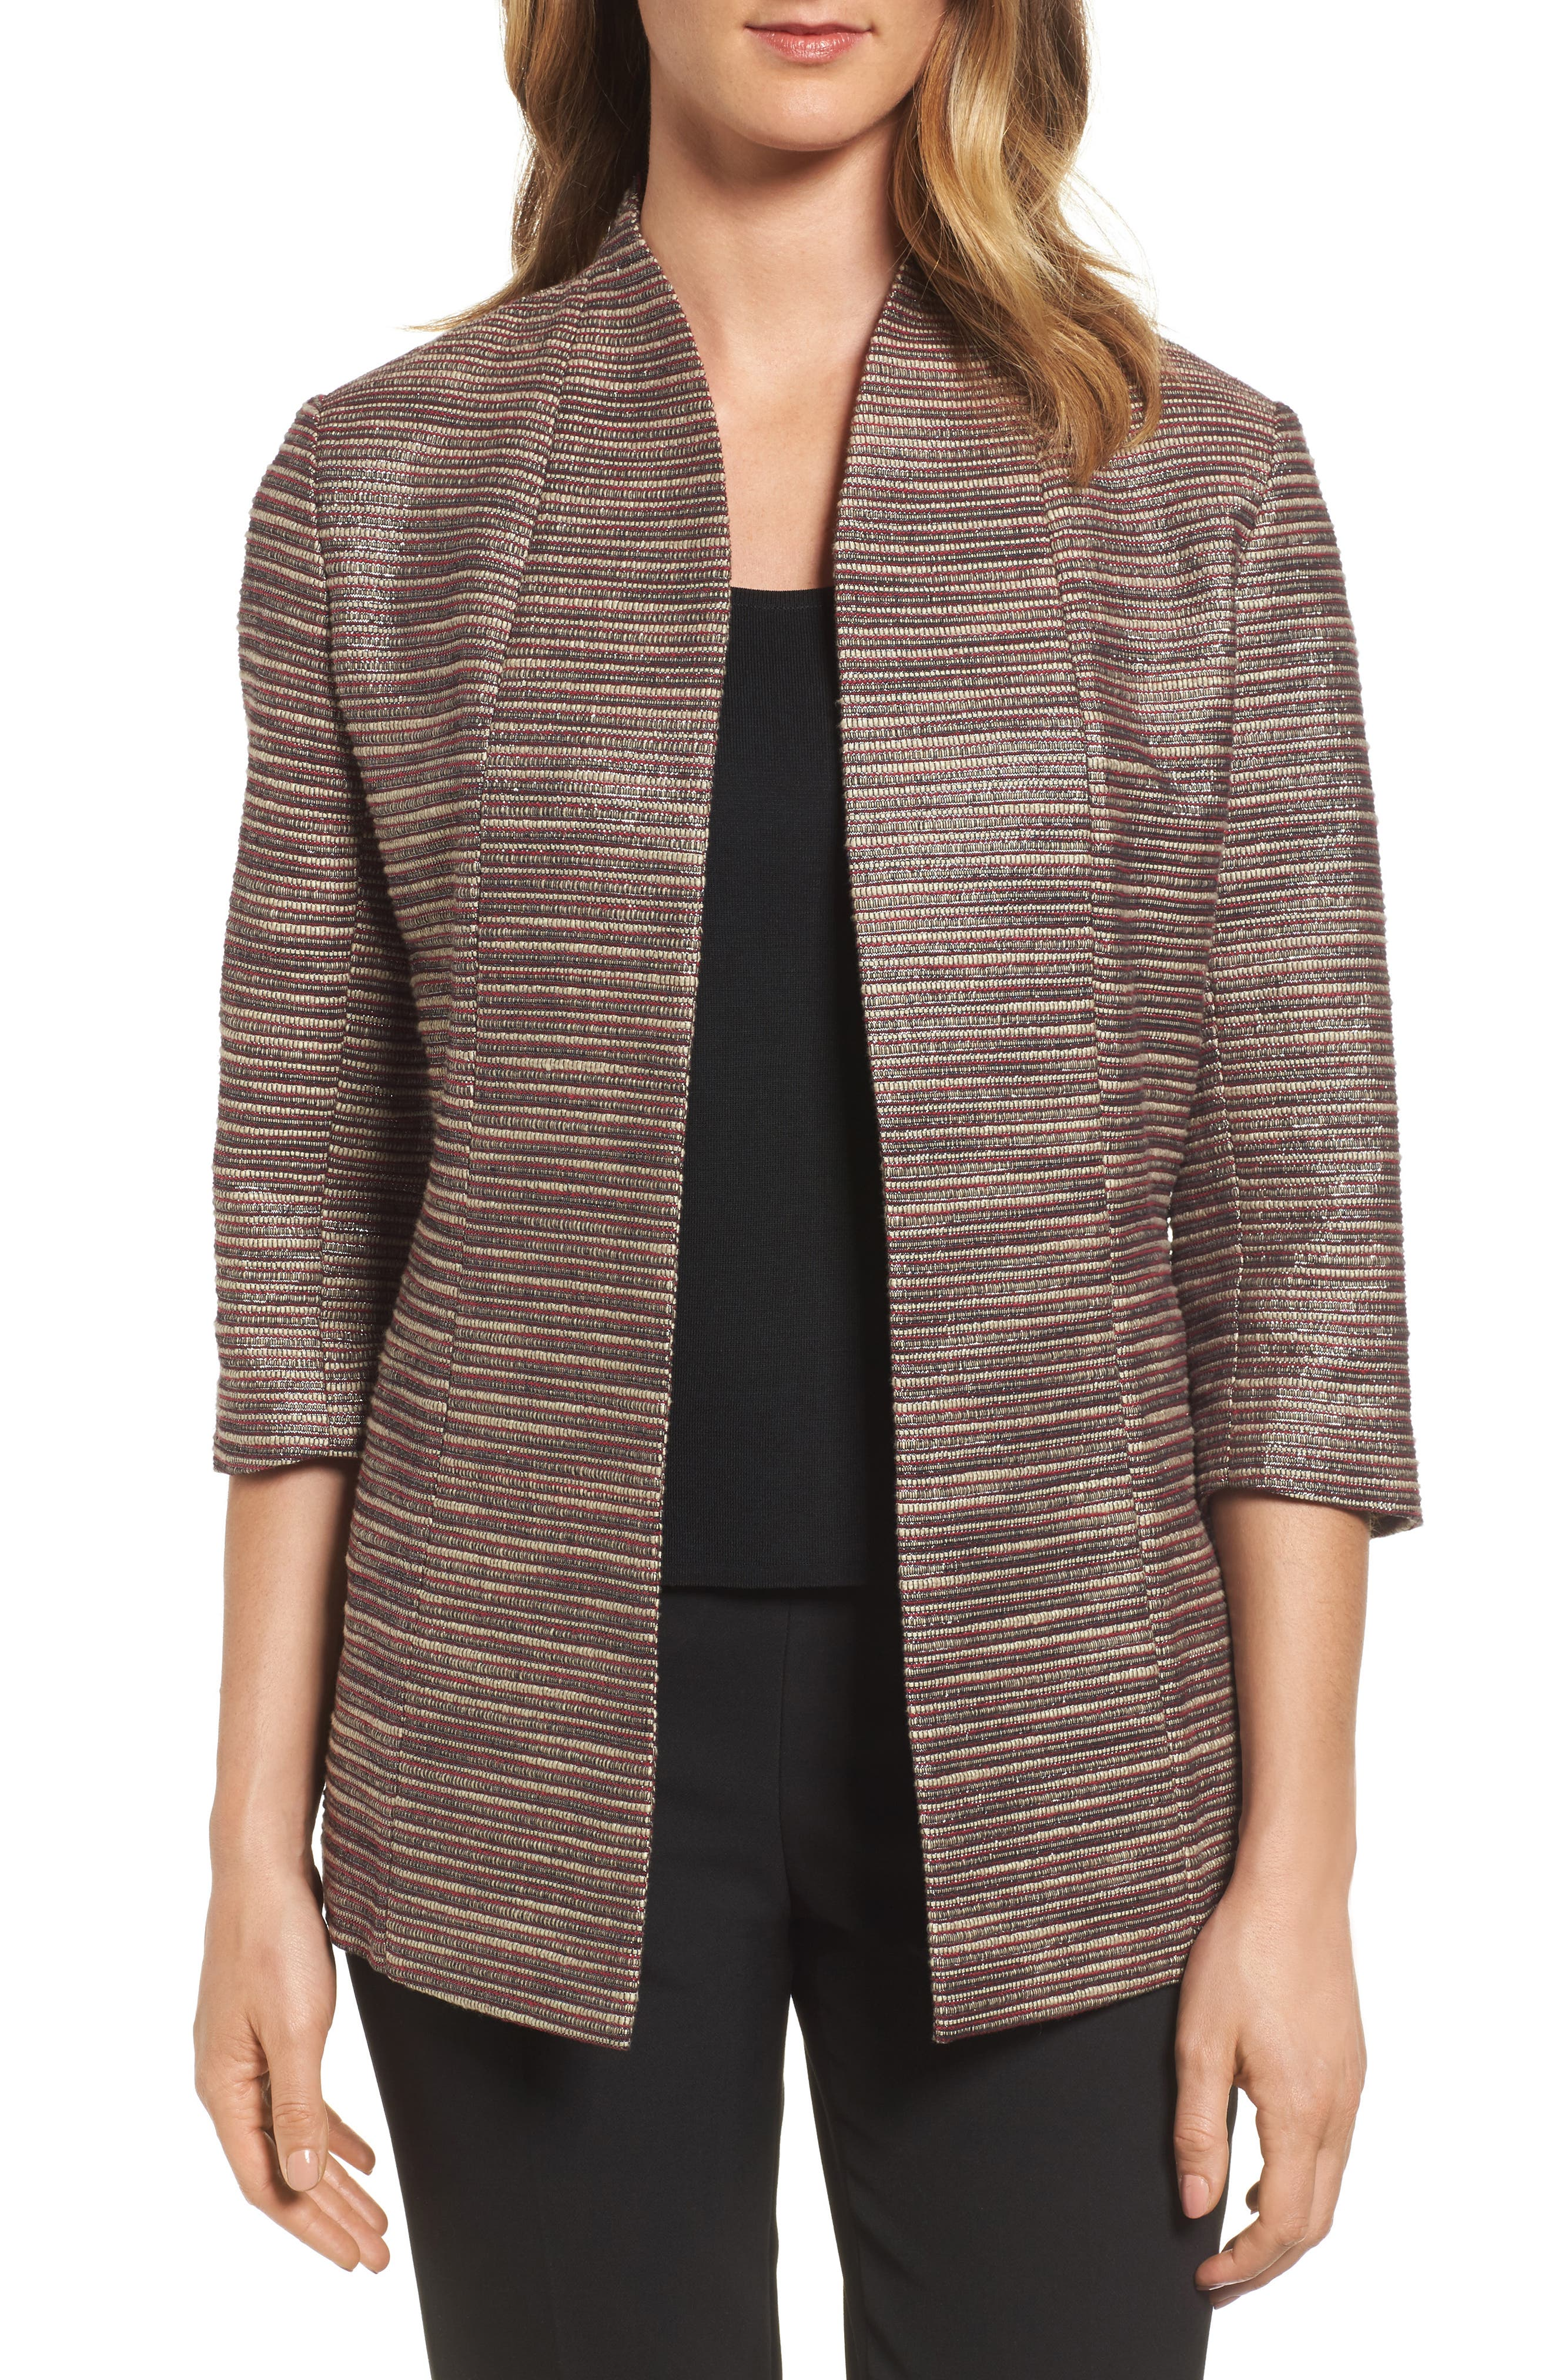 Ribbed Metallic Tweed Jacket,                         Main,                         color, Charged Pink/ Black/ Ivory